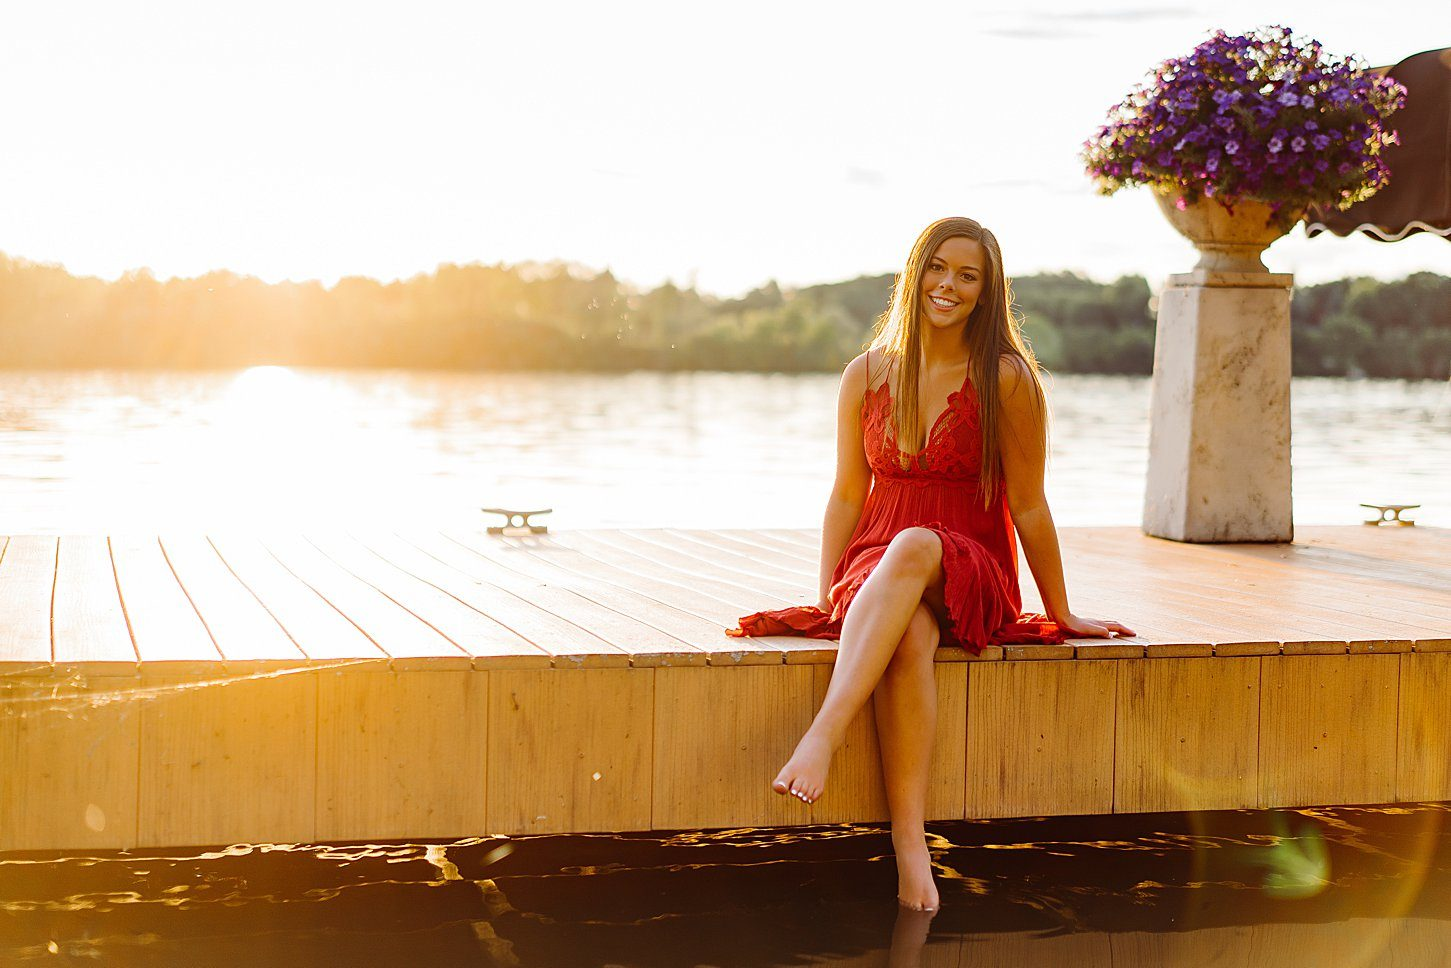 West De Pere High School Senior Portrait Session – Lauren